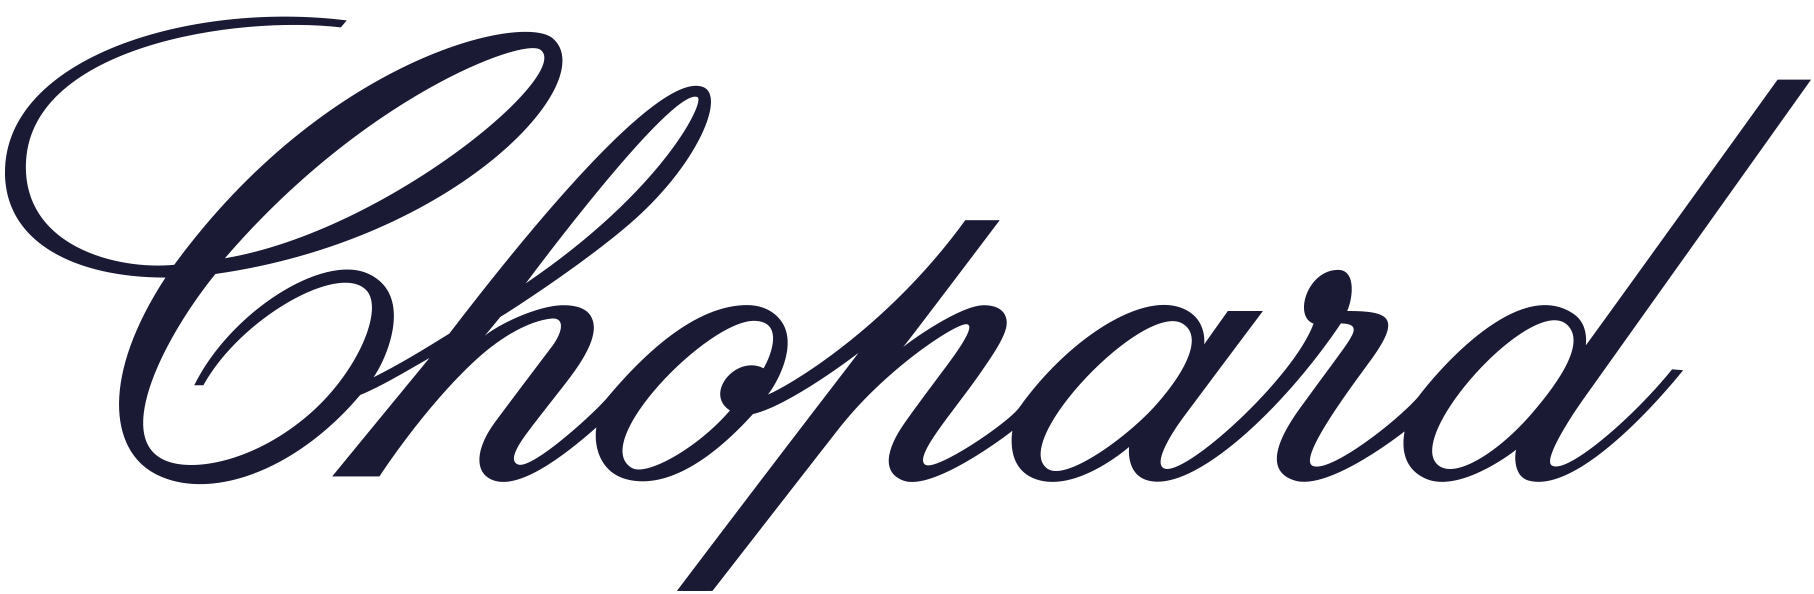 logo chopard big